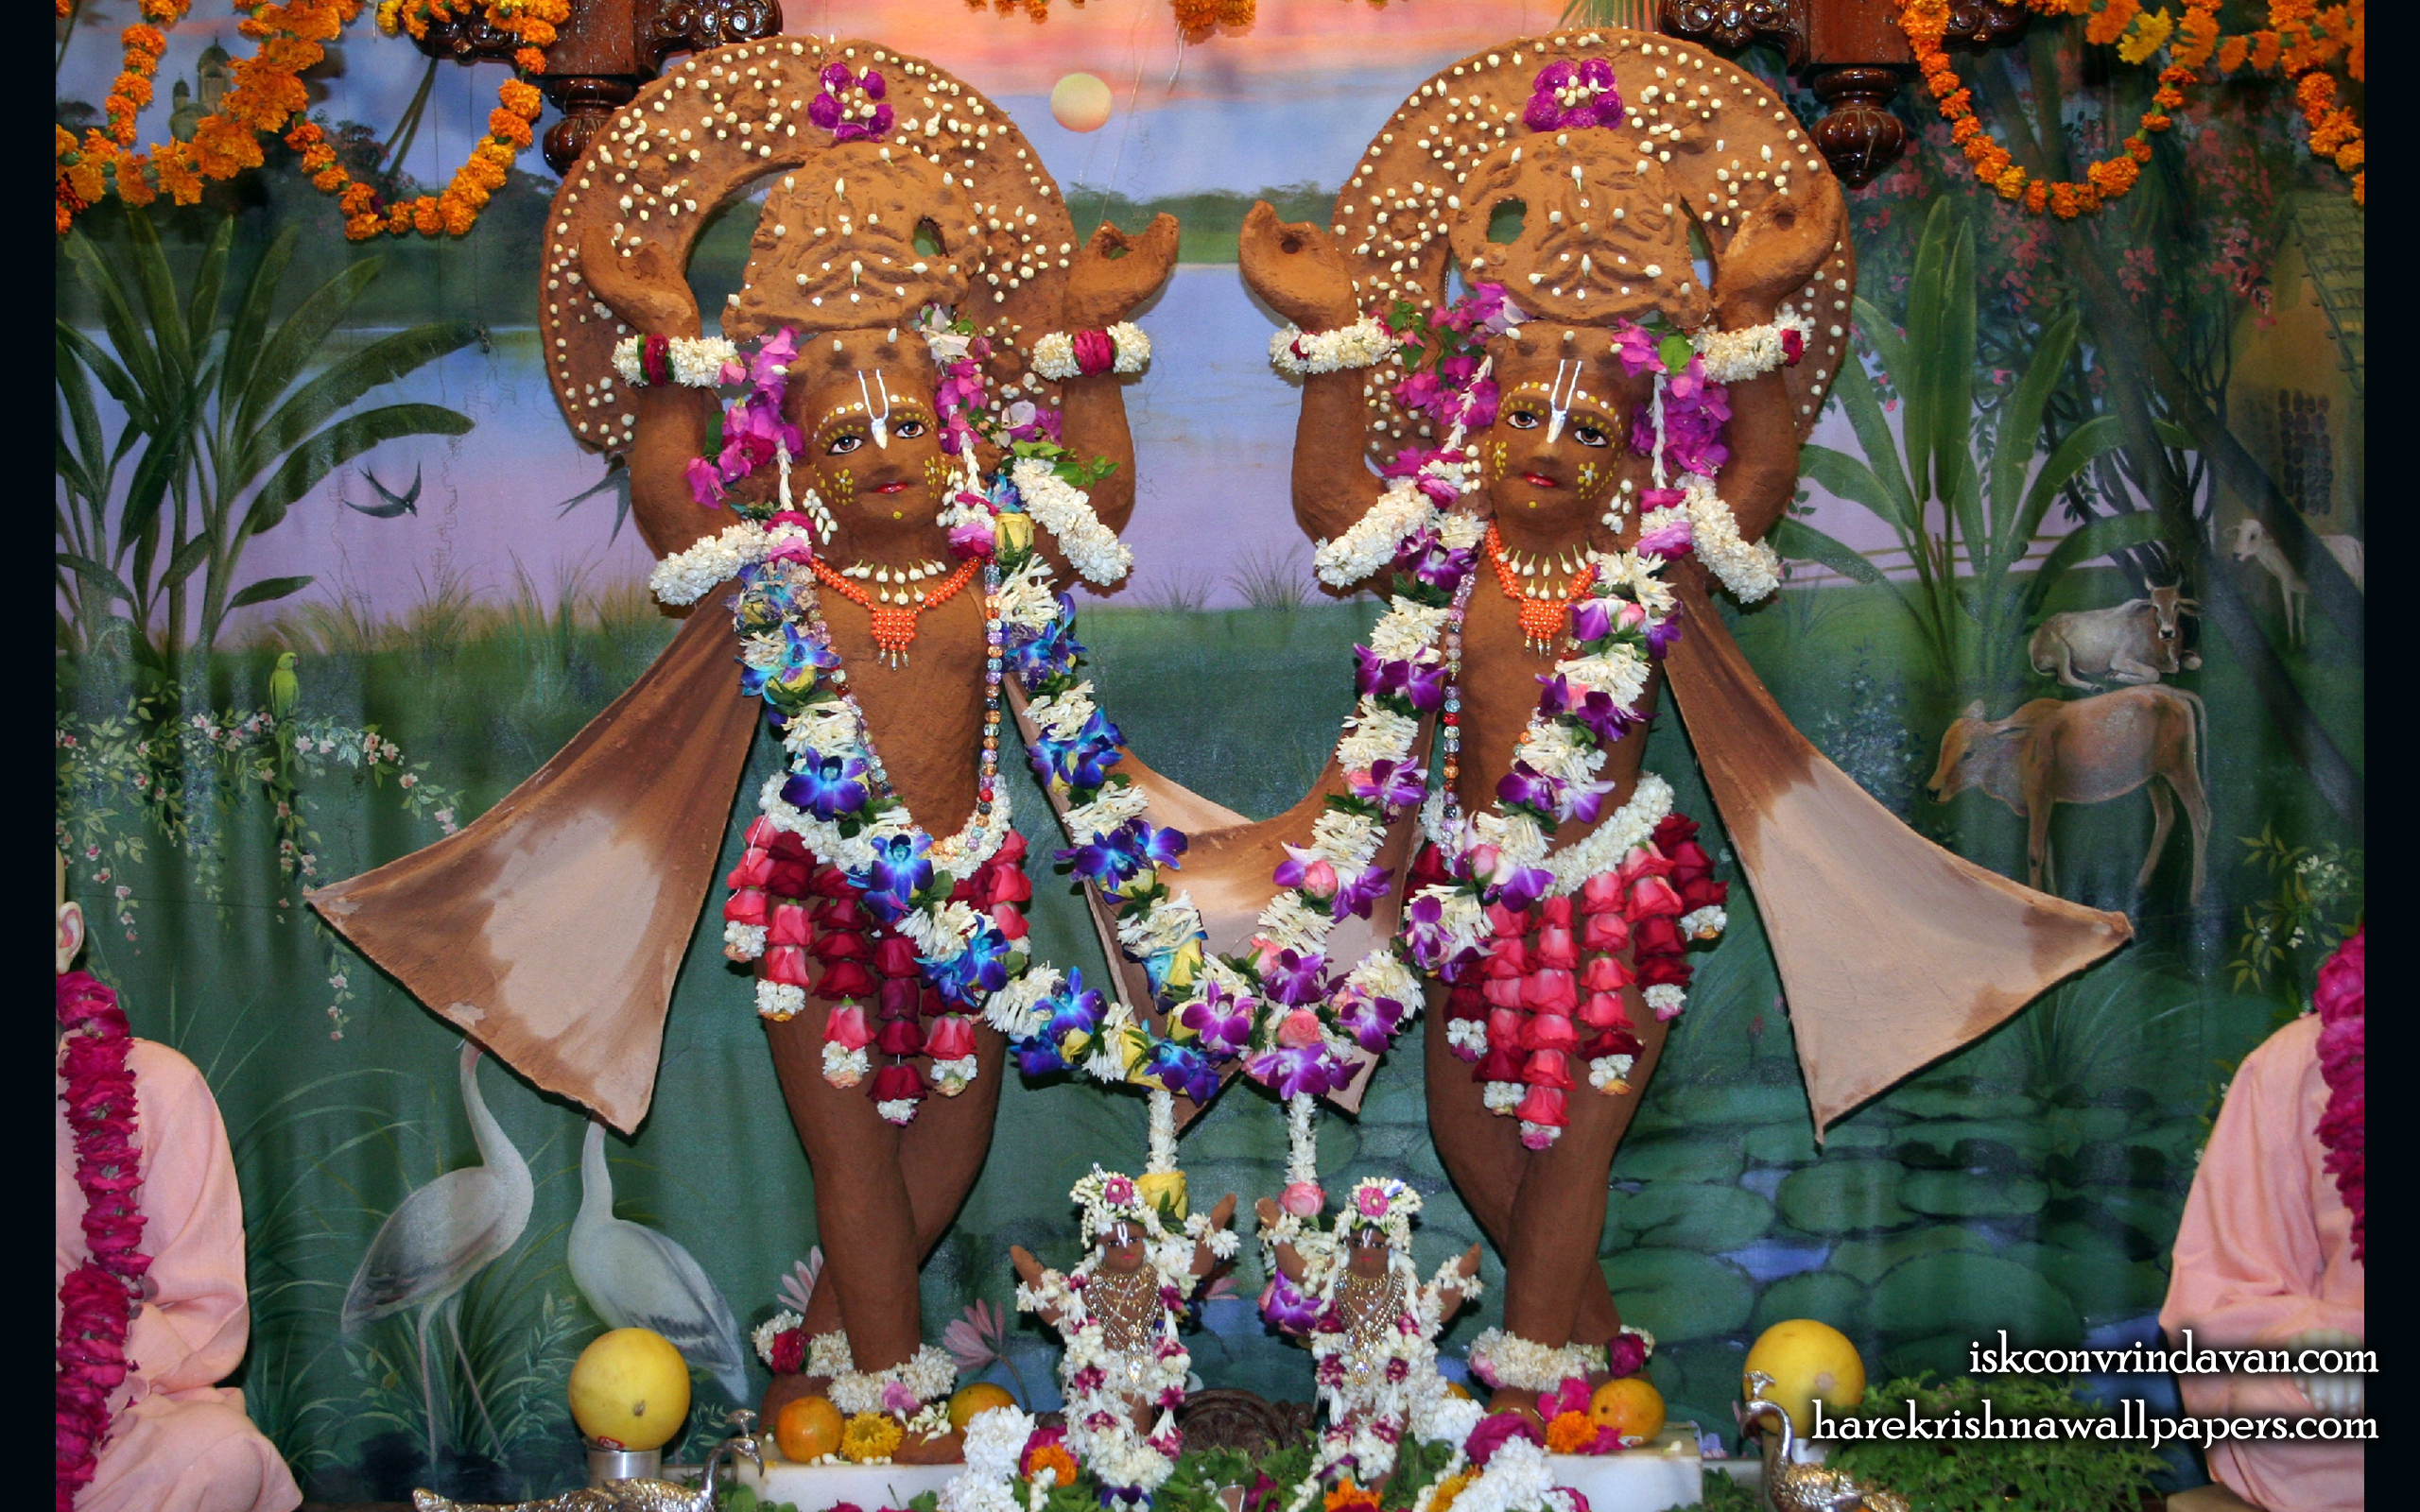 Sri Sri Gaura Nitai Wallpaper (084) Size 2560x1600 Download